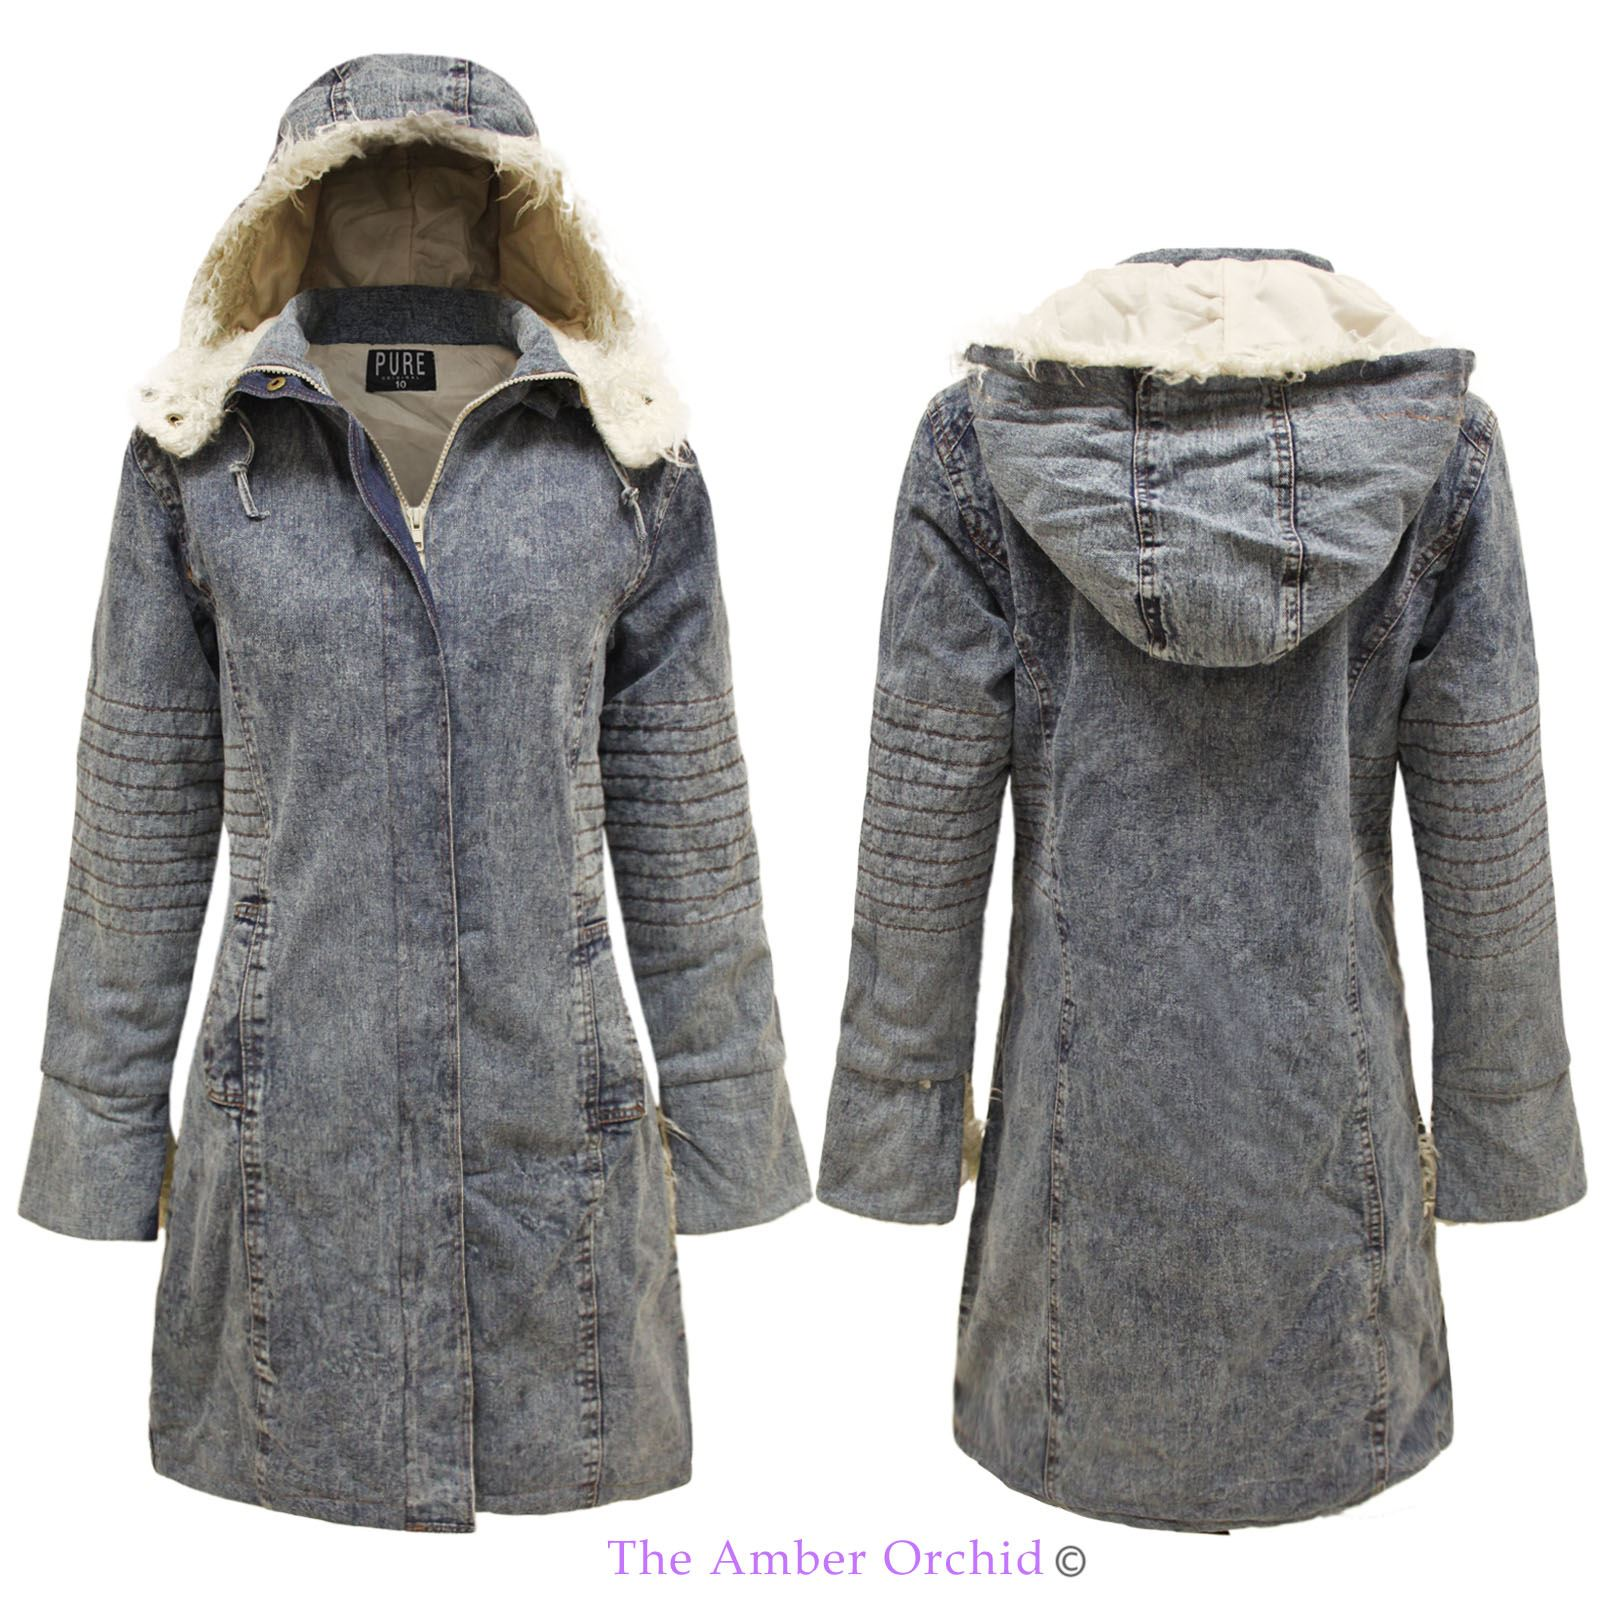 neu damen kunstpelz kapuze acid wash parka damen winter denim lange jacke mantel ebay. Black Bedroom Furniture Sets. Home Design Ideas